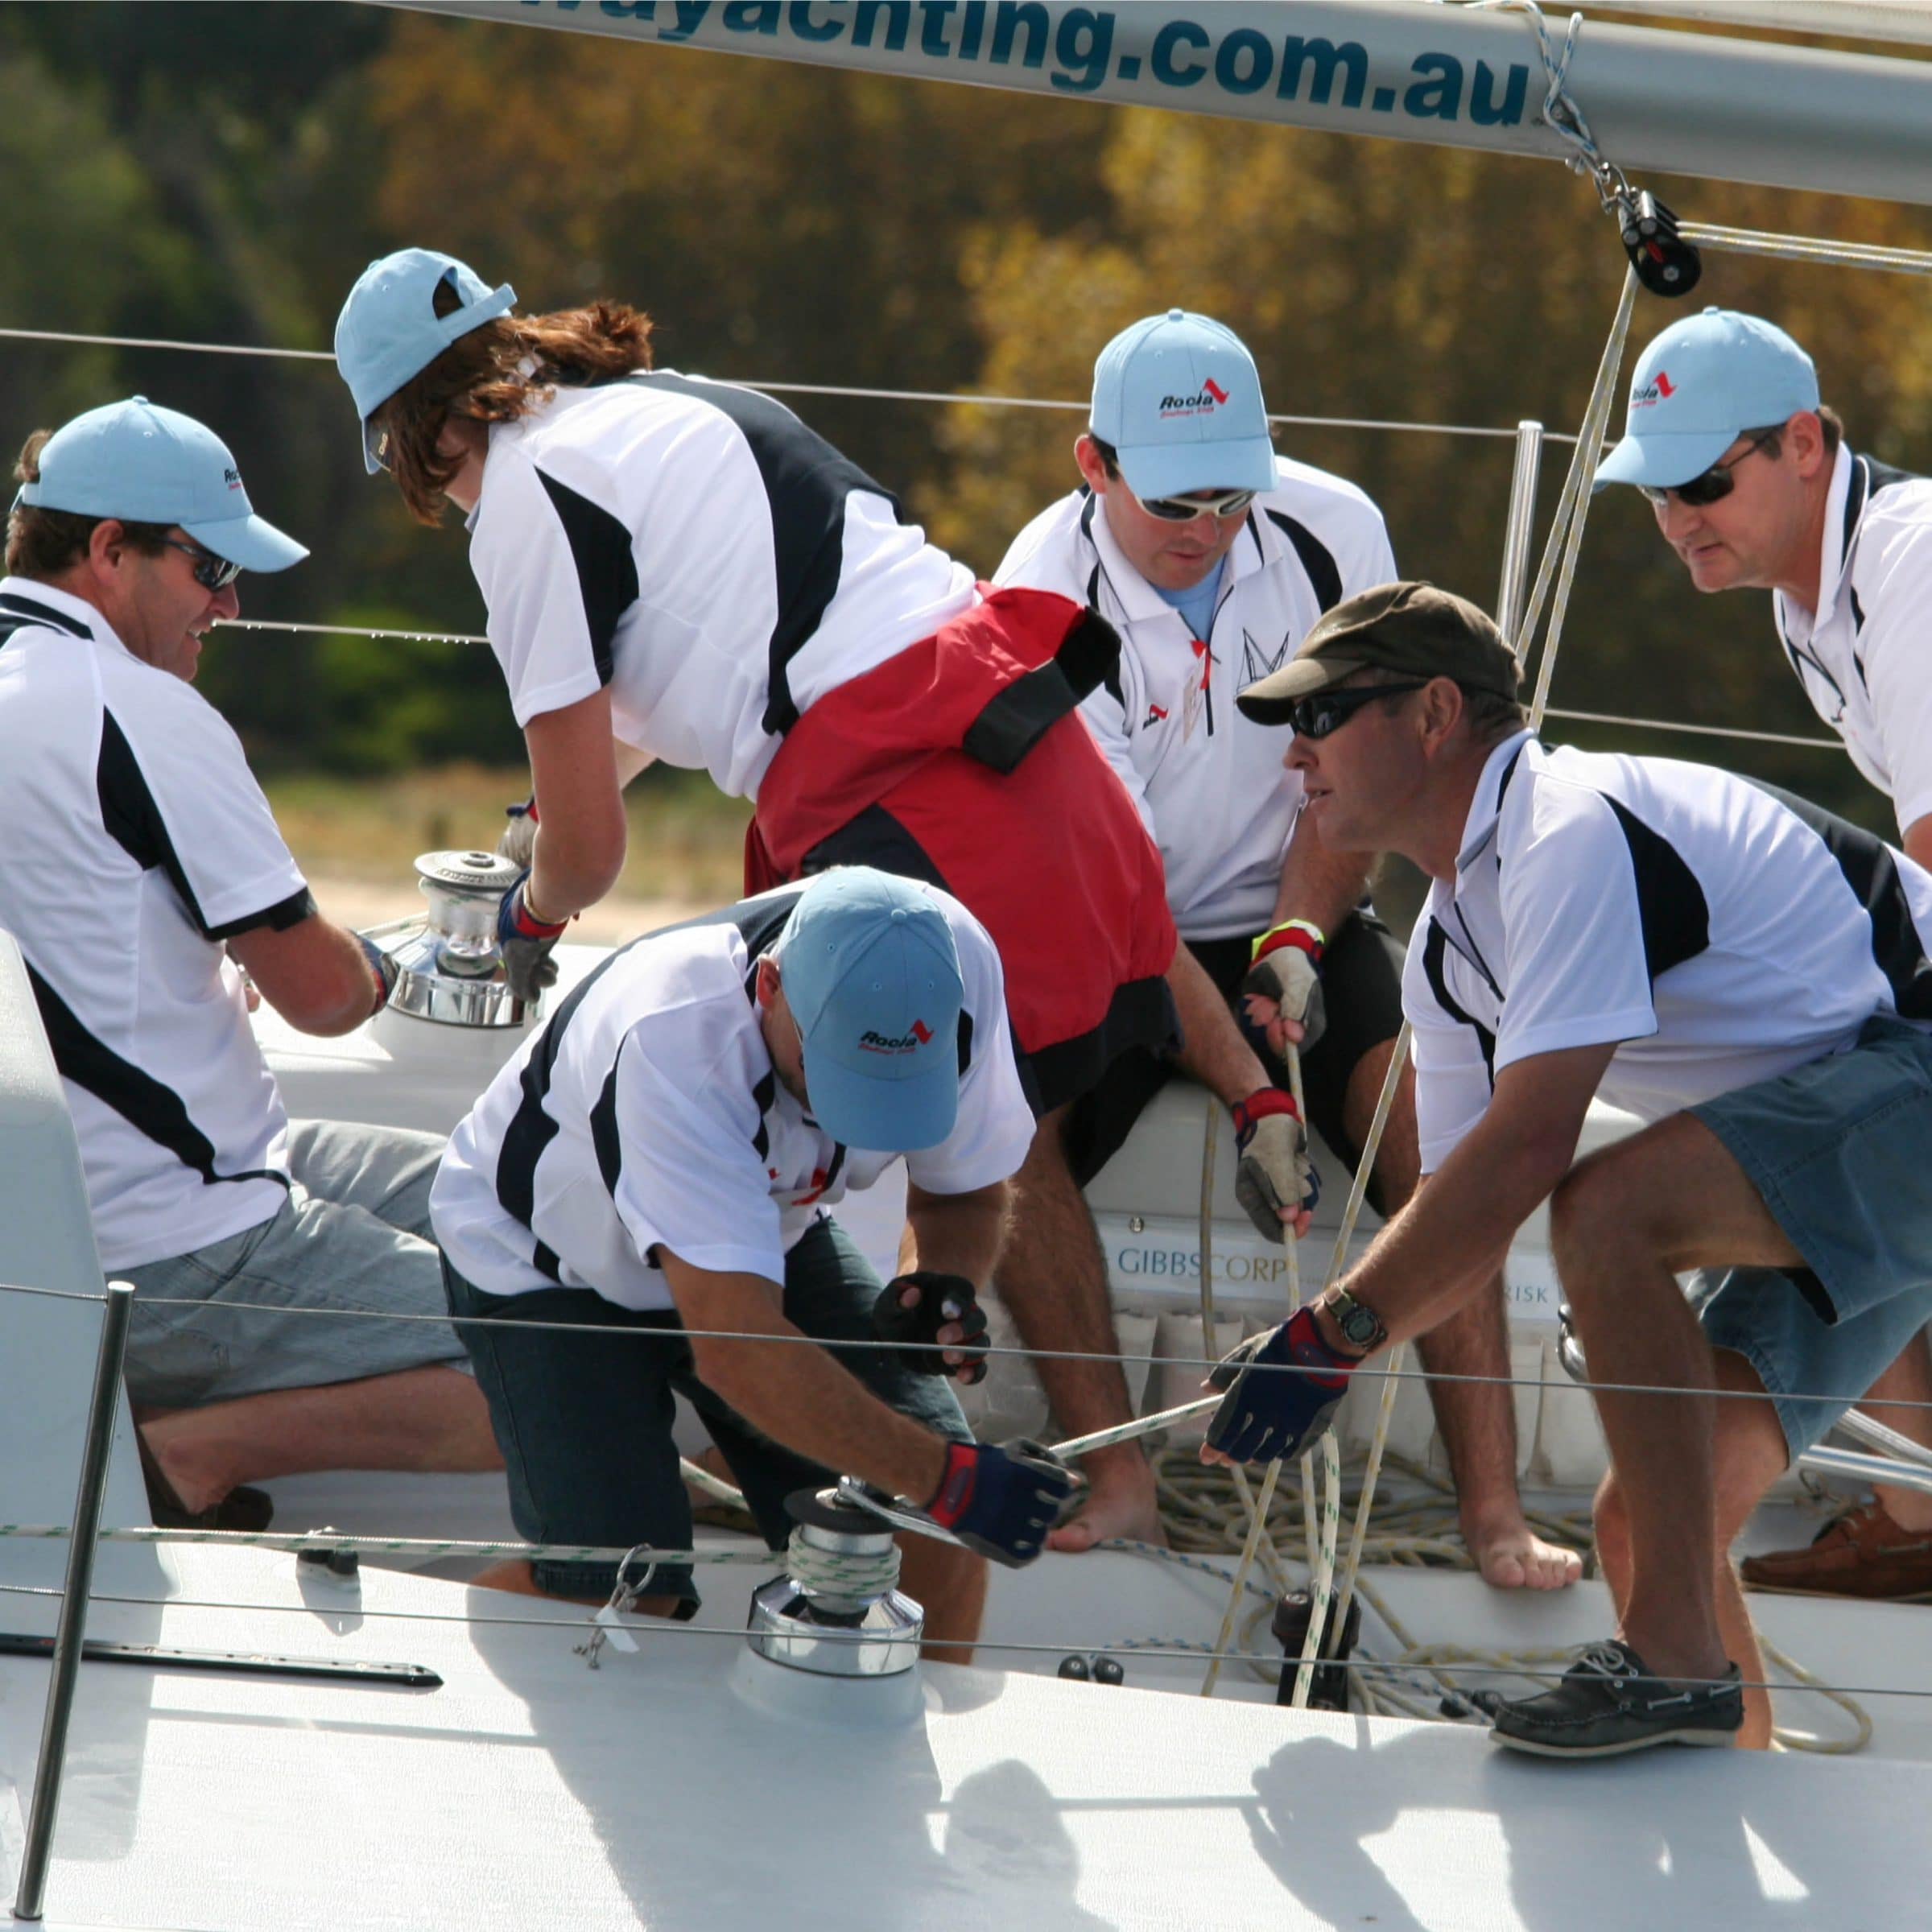 team building with swan river sailing in perth